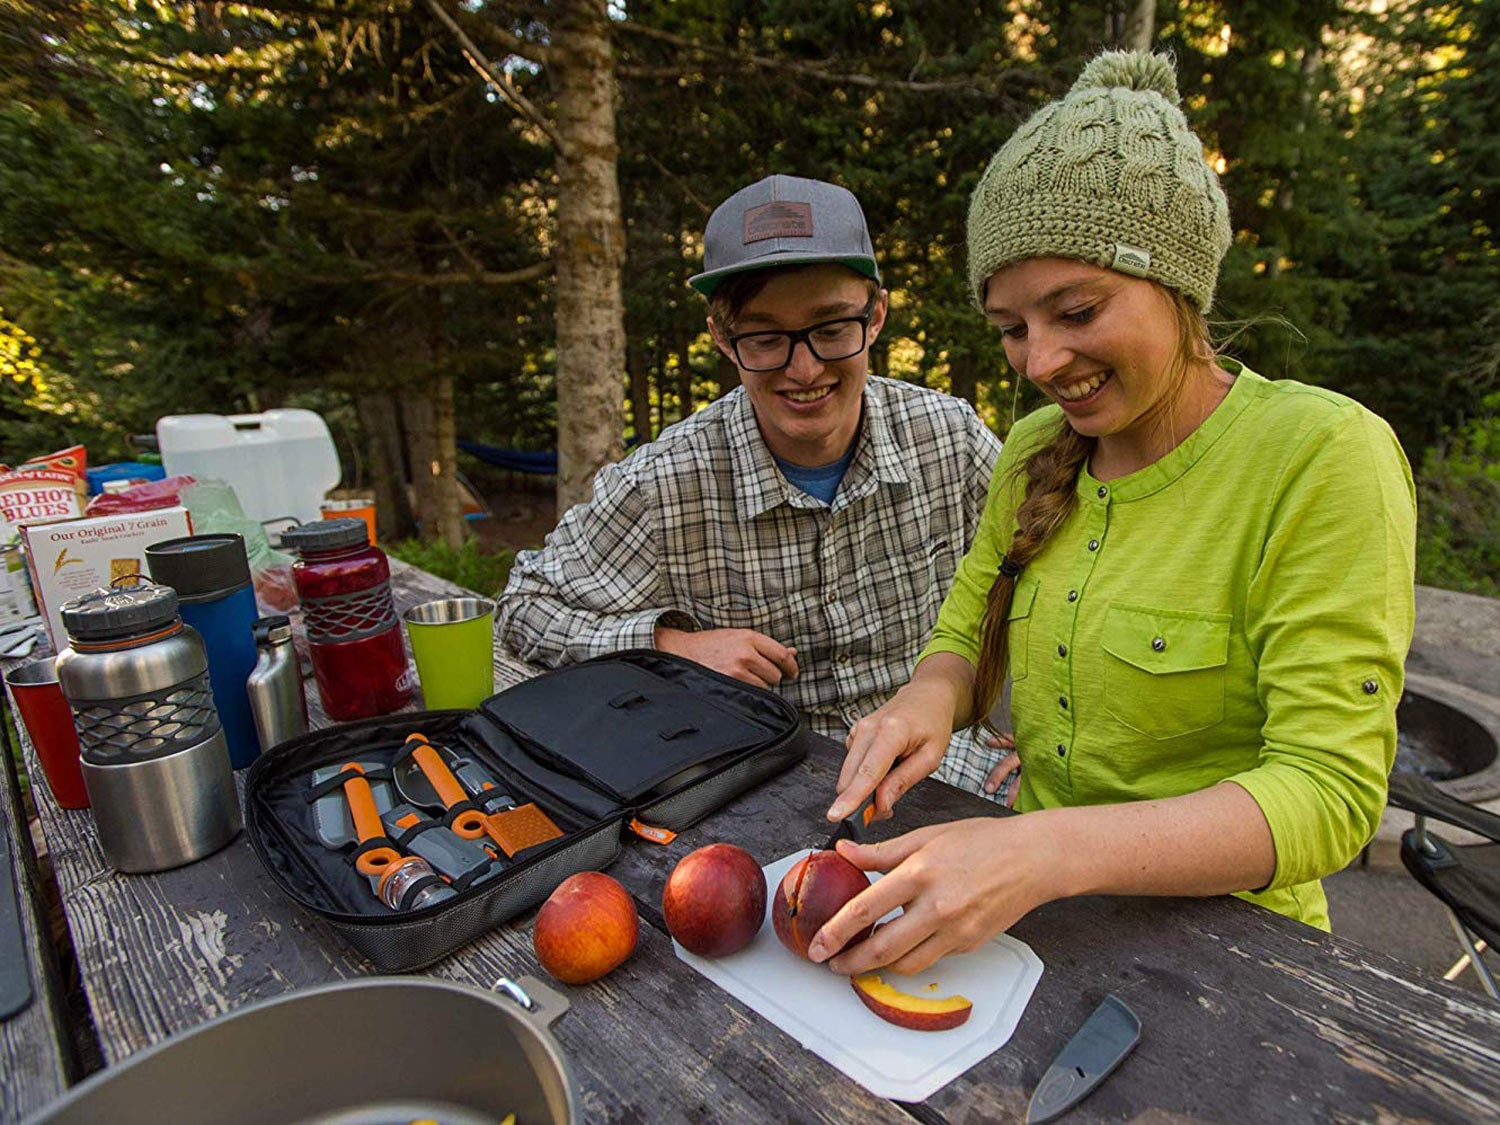 3 Things You Need in a Camp Kitchen Kit